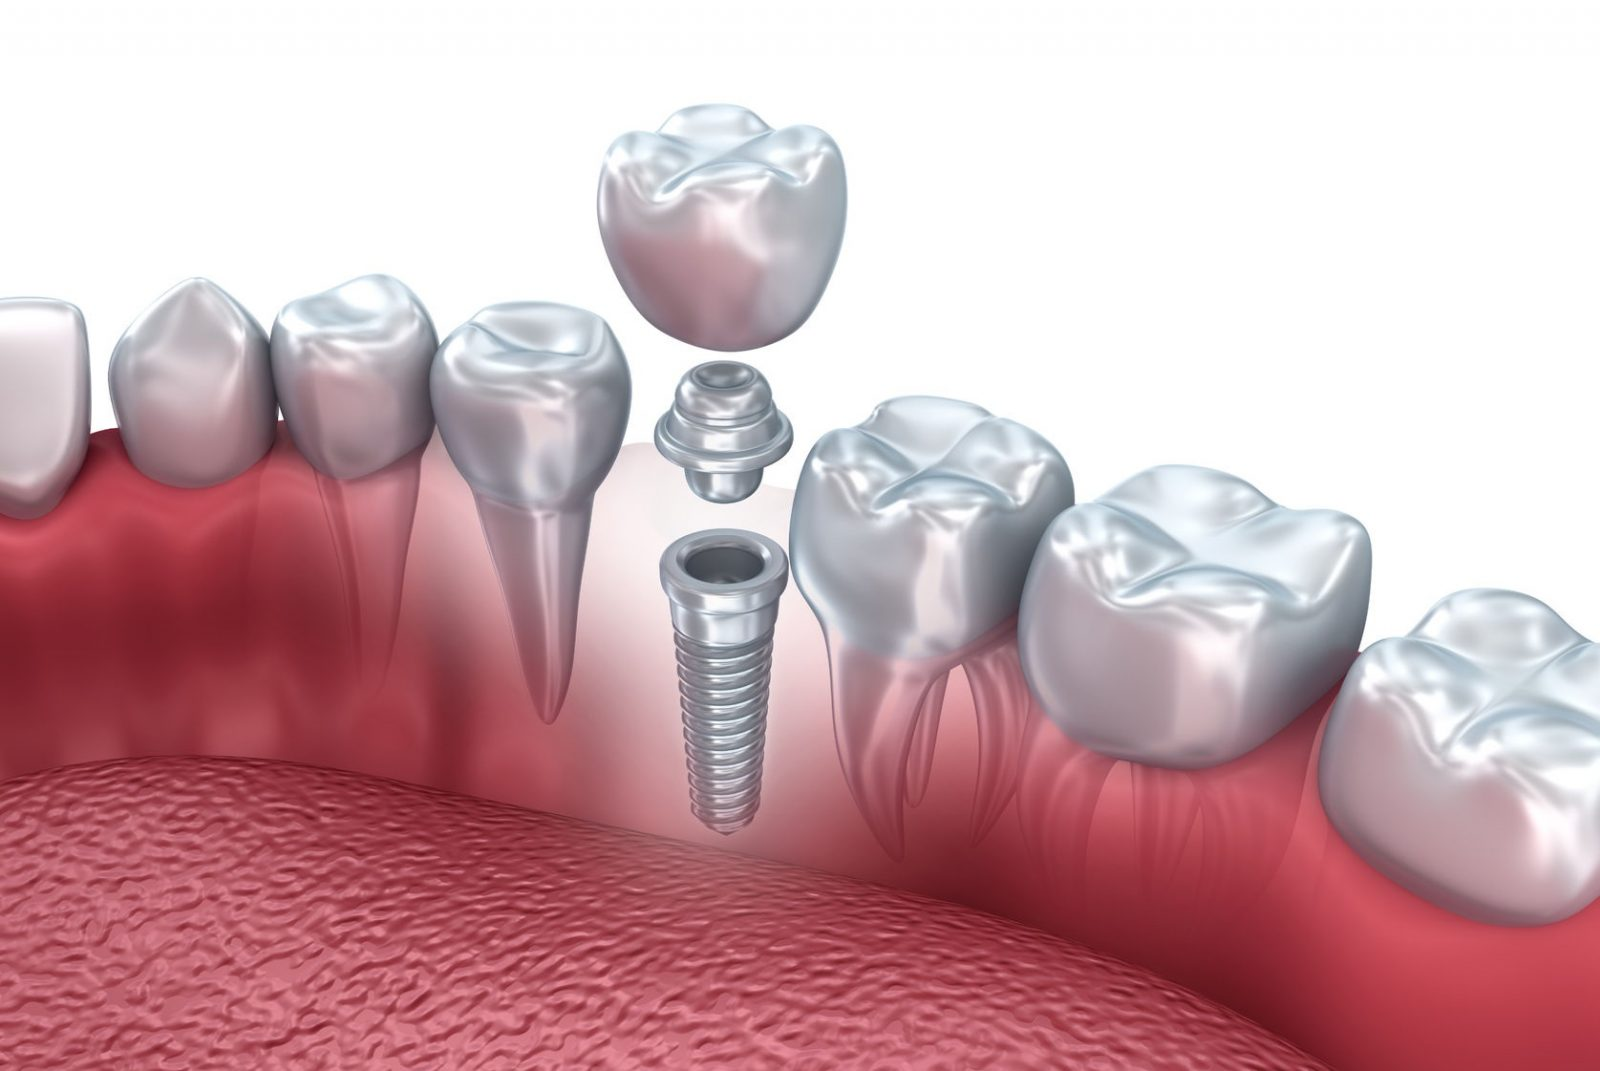 50149518 - tooth human implant, 3d illustration